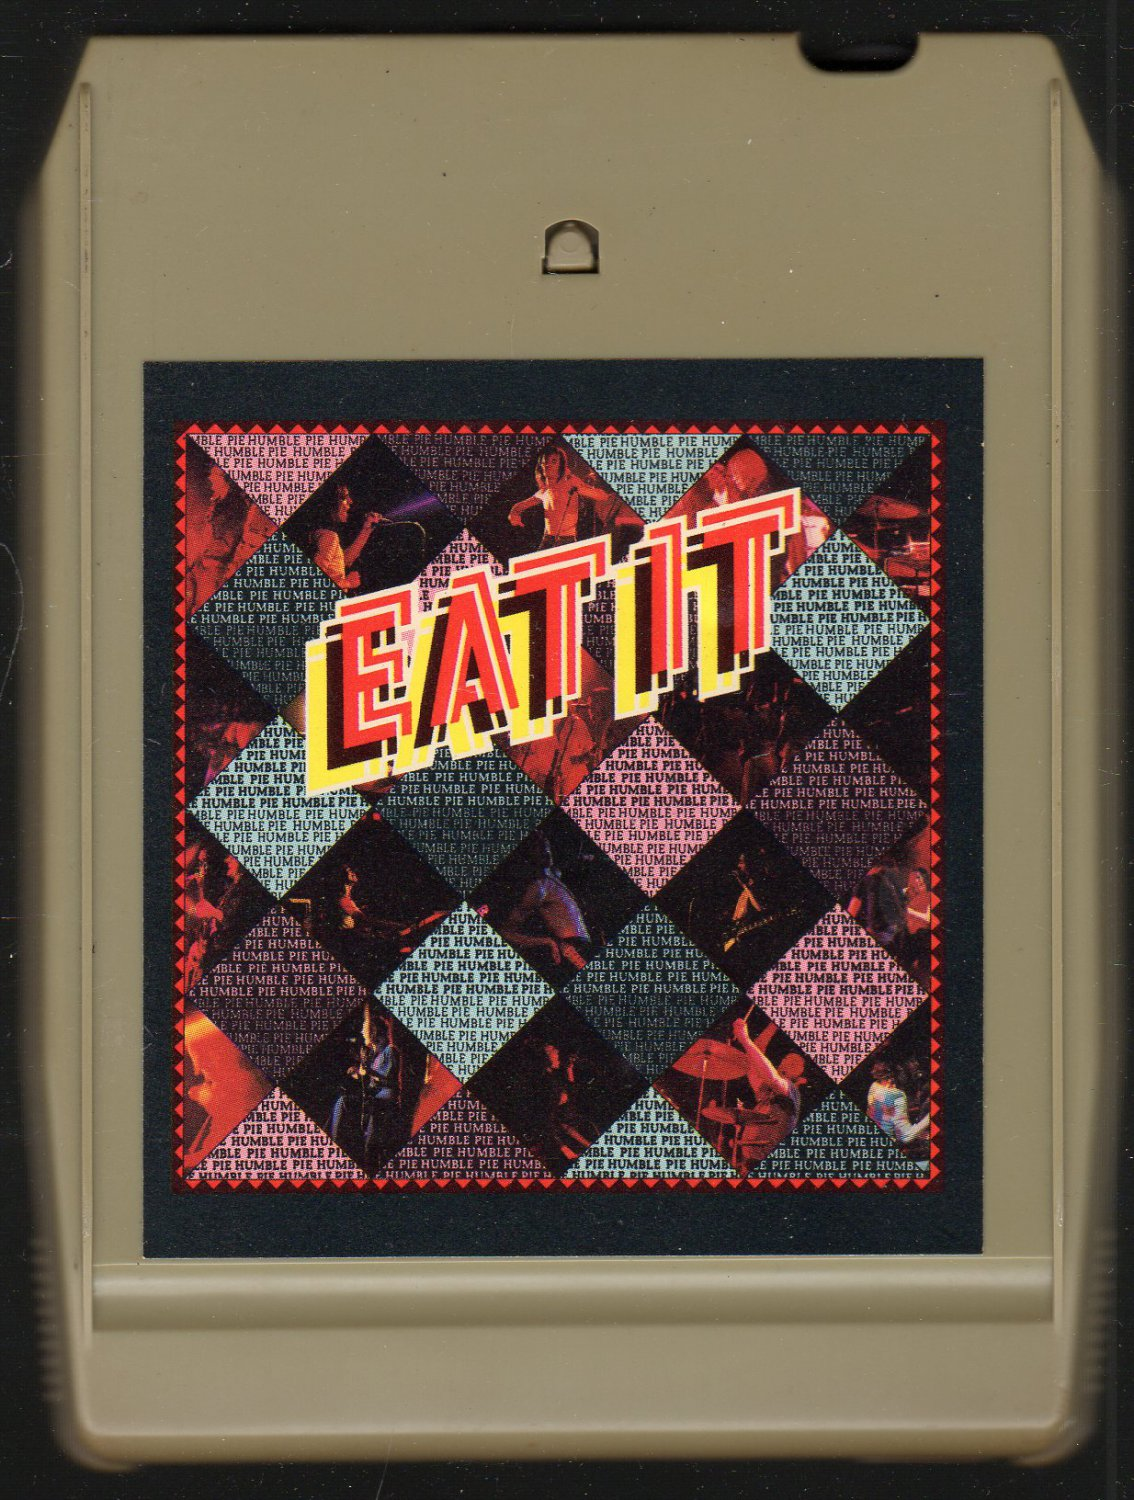 Humble Pie - Eat It 8-track tape